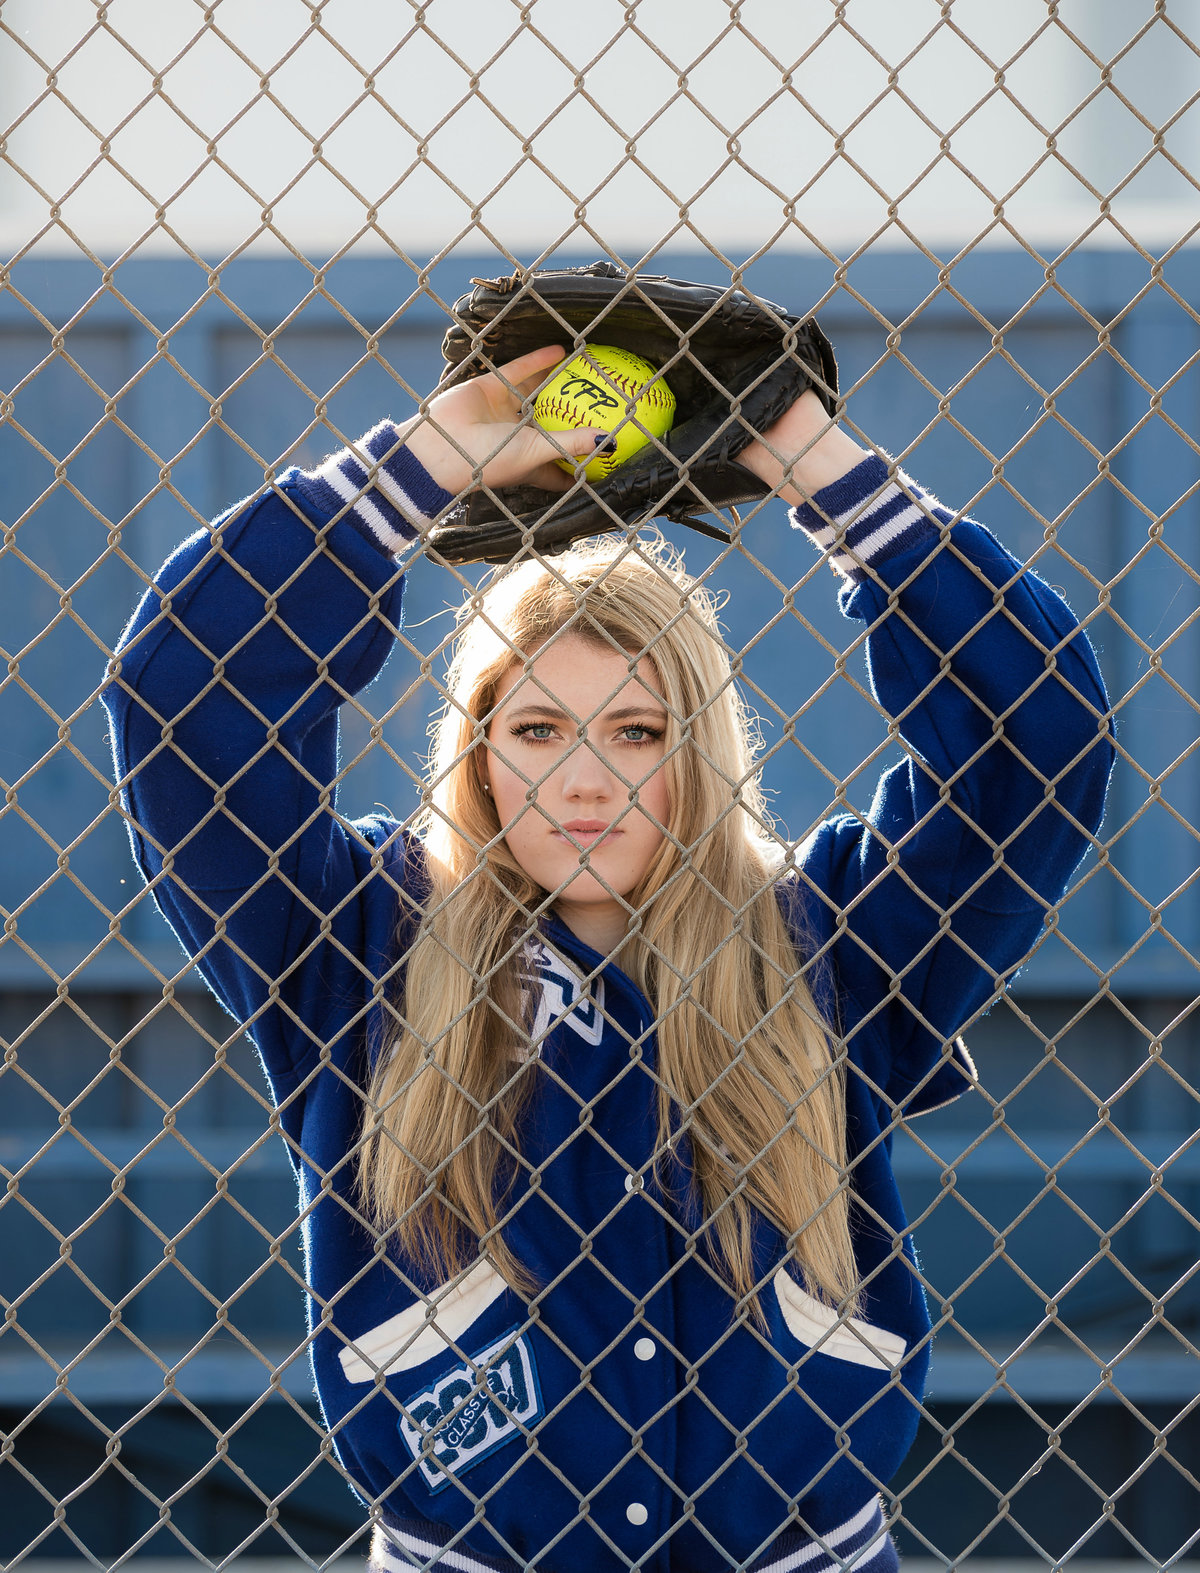 Redway-California-senior-portrait-photographer-Parky's-Pics-PhotographyHumboldt-County-Fortuna-HIgh-softball.6.jpg